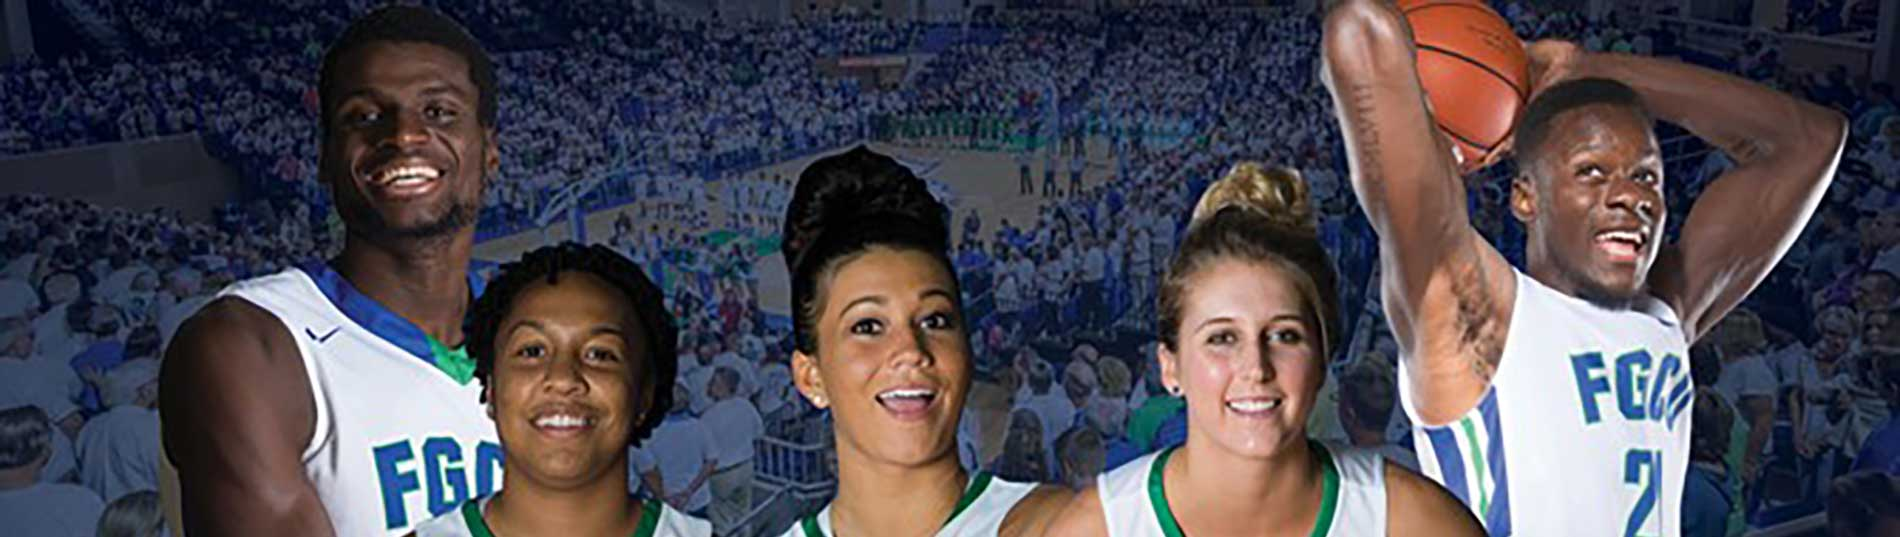 picture of FGCU basketball players